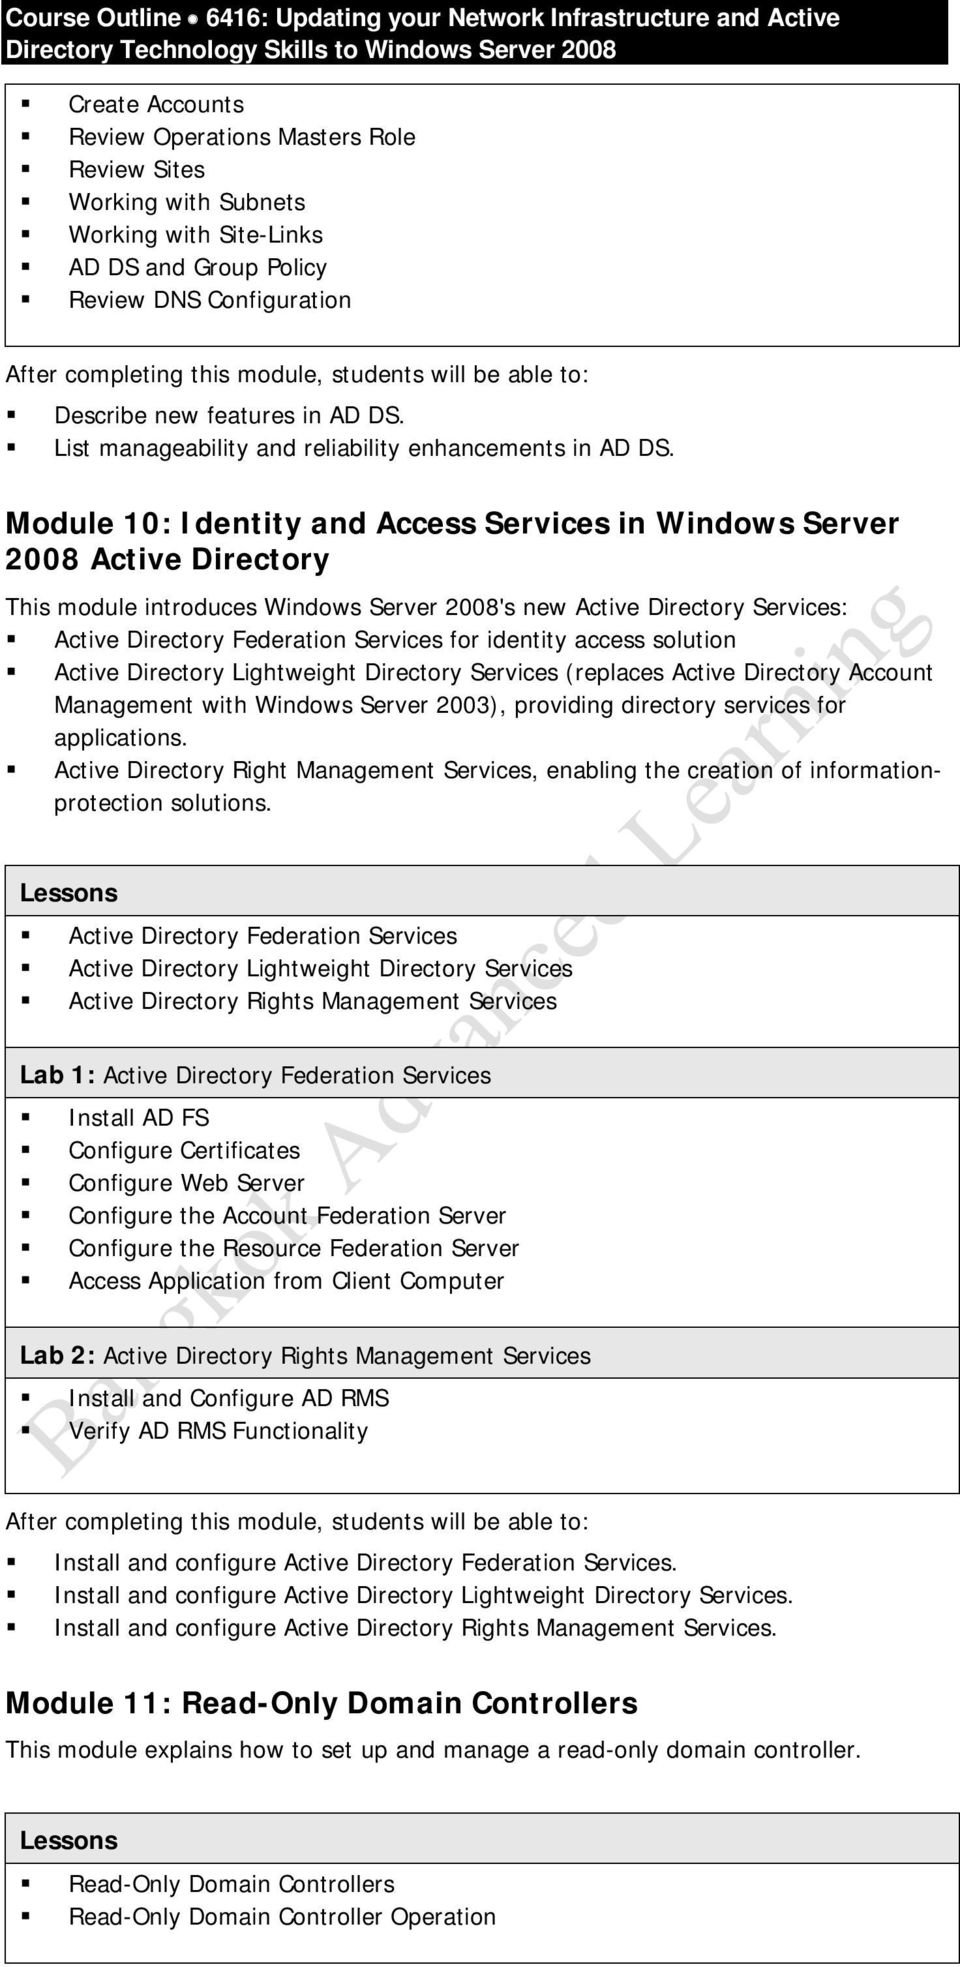 Module 10: Identity and Access Services in Windows Server 2008 Active Directory This module introduces Windows Server 2008's new Active Directory Services: Active Directory Federation Services for